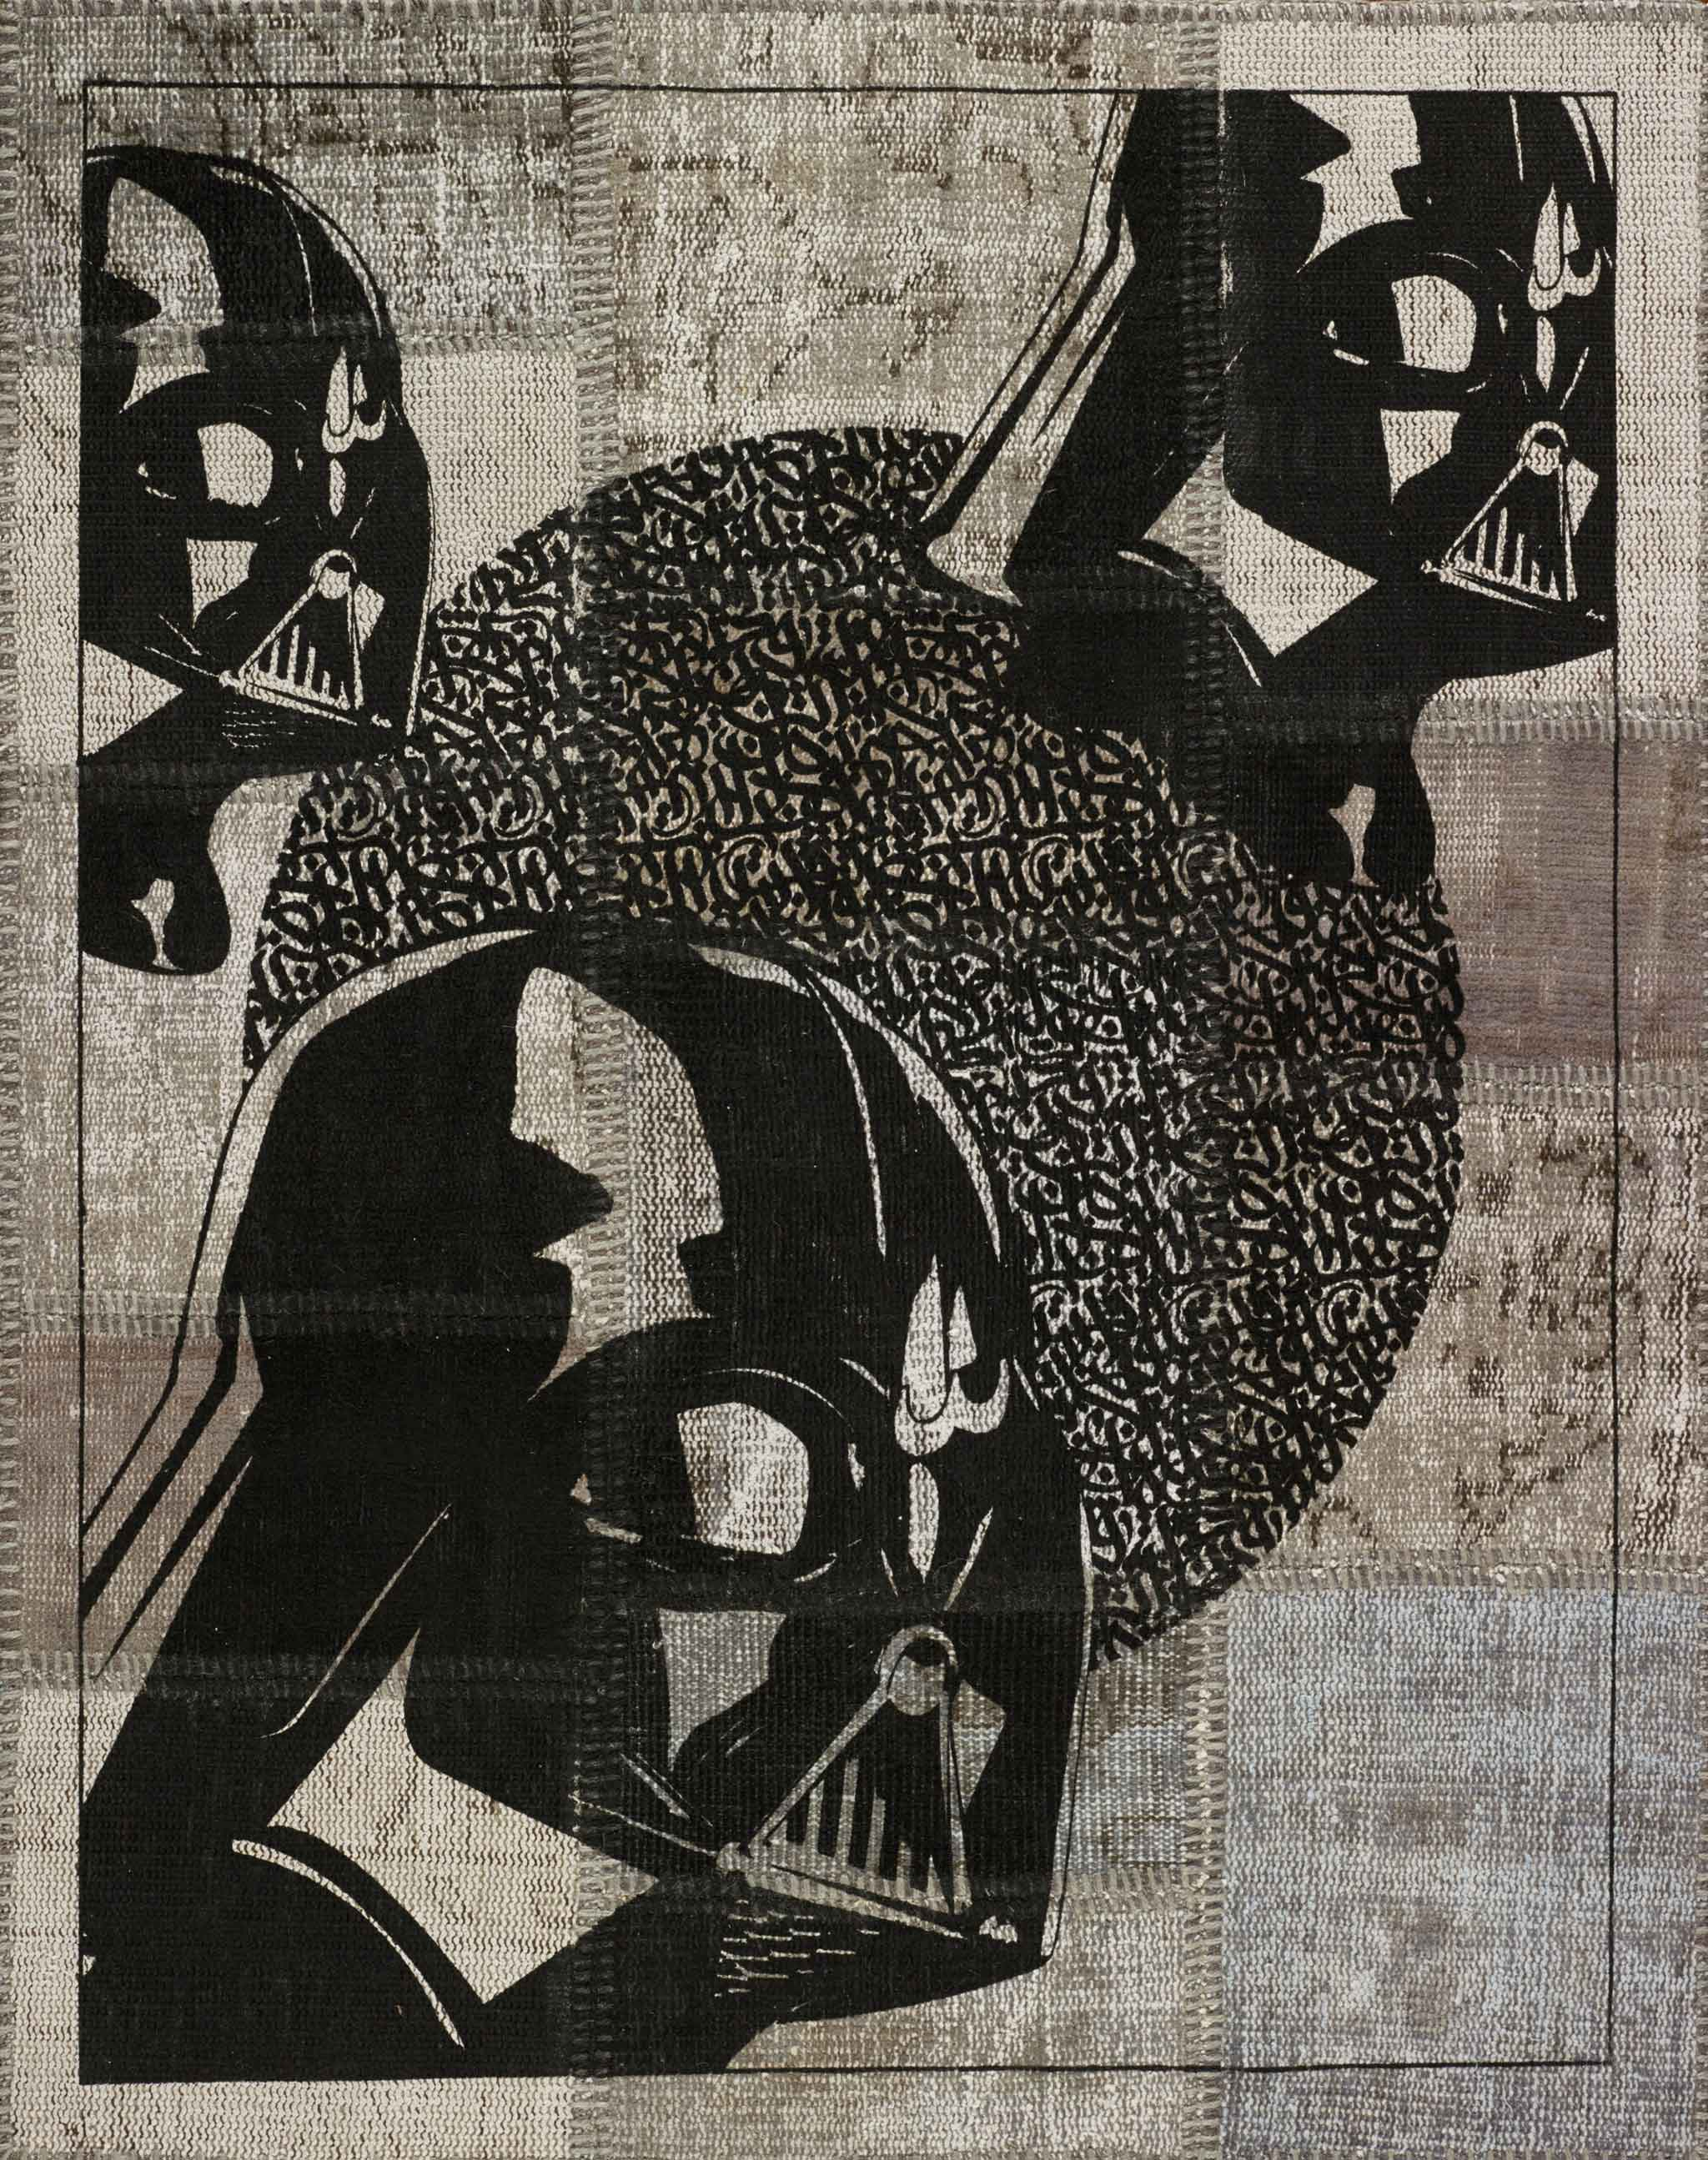 'Darth Vader' by Hadi Maktabi is a limited edition series of ten (10) 3ft x 4ft (1m x 1.2m) rugs eponymously named after the famed Star Wars character. | Image courtesy of Hadi Maktabi.